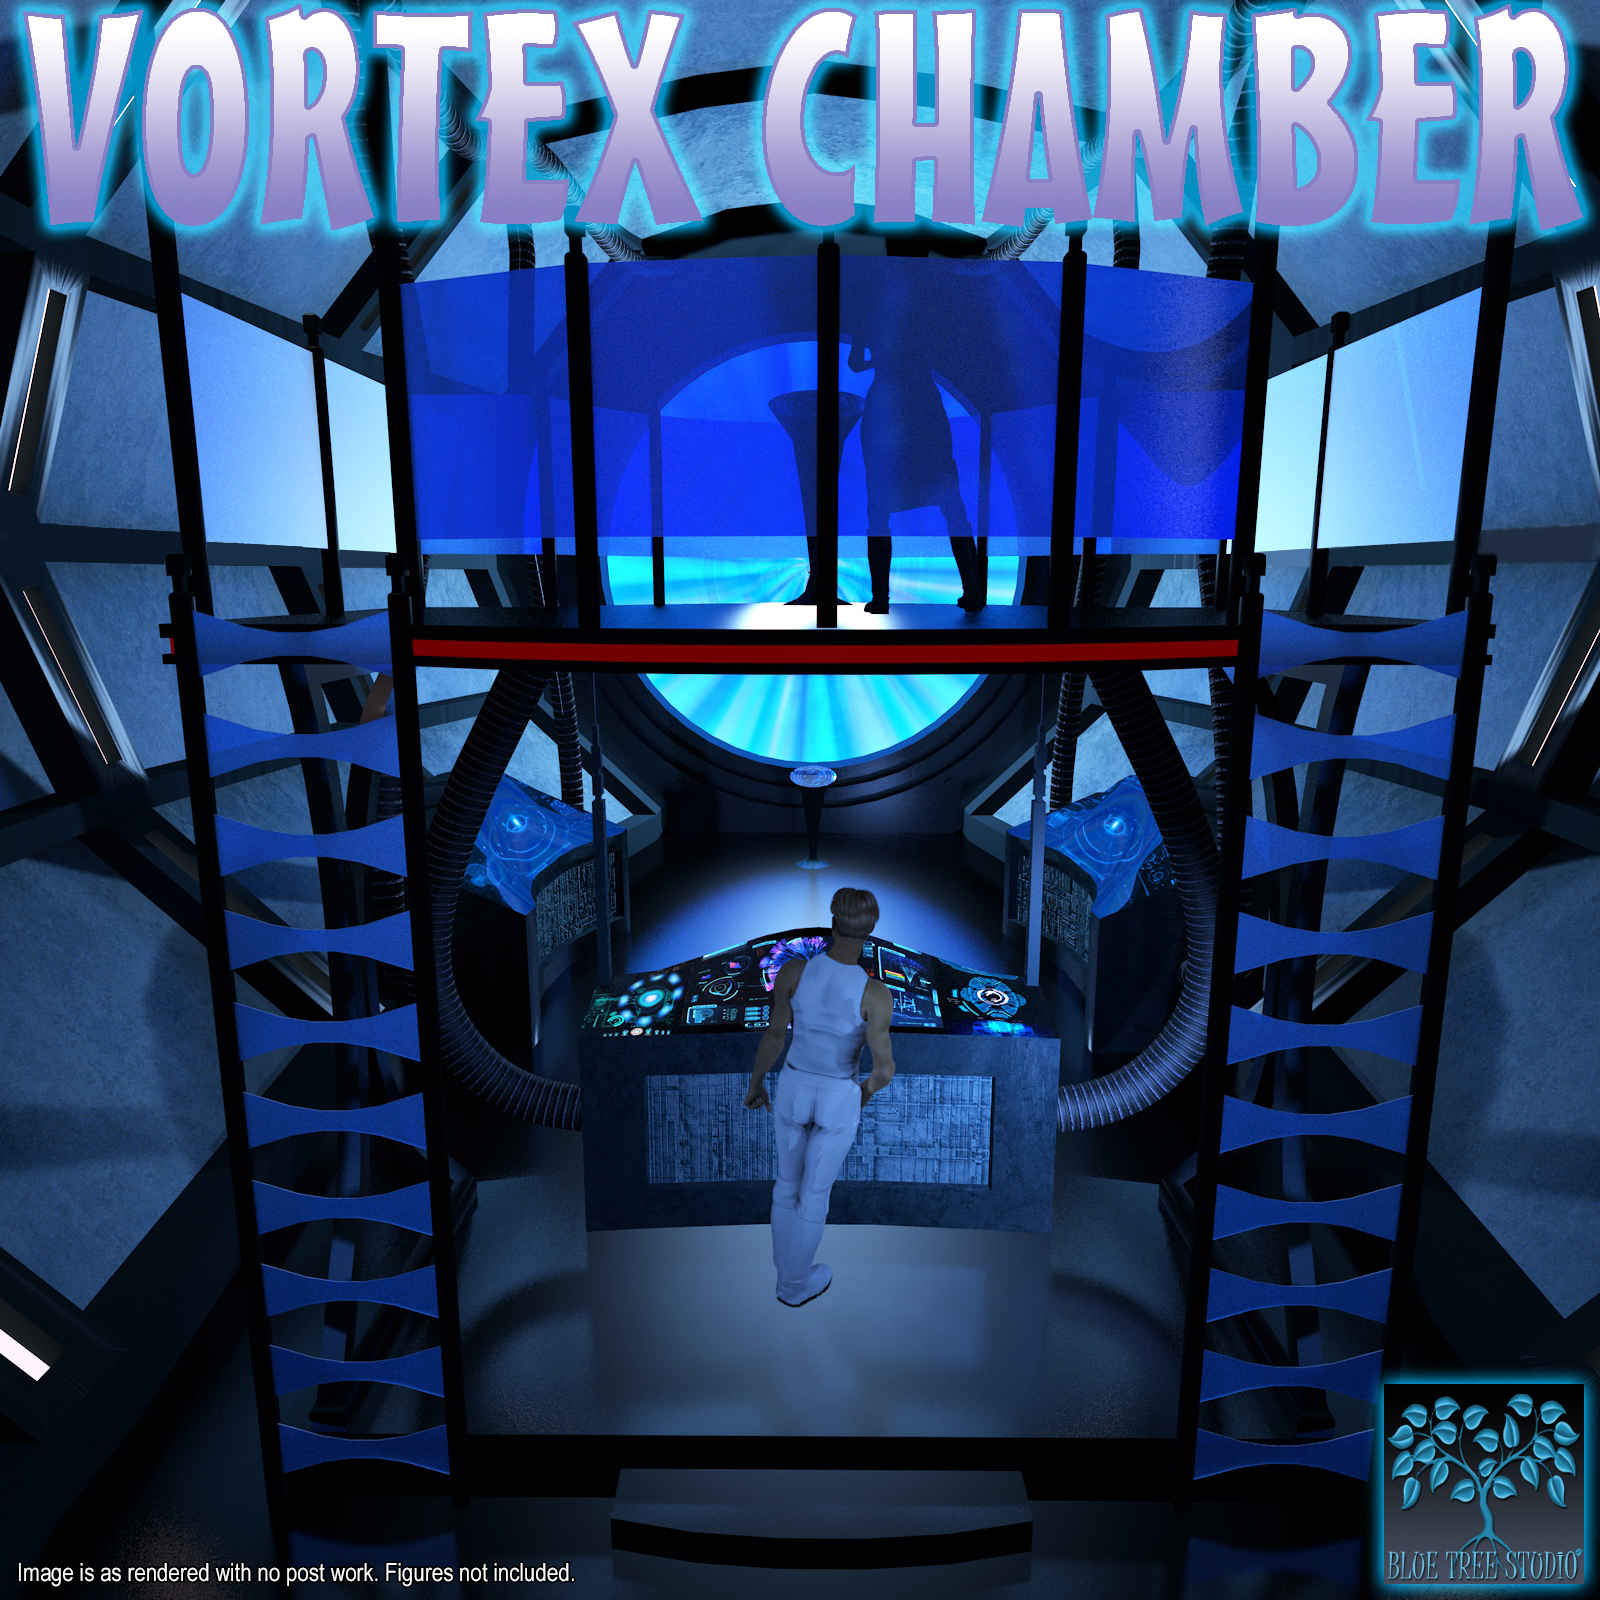 Vortex Chamber by BlueTreeStudio